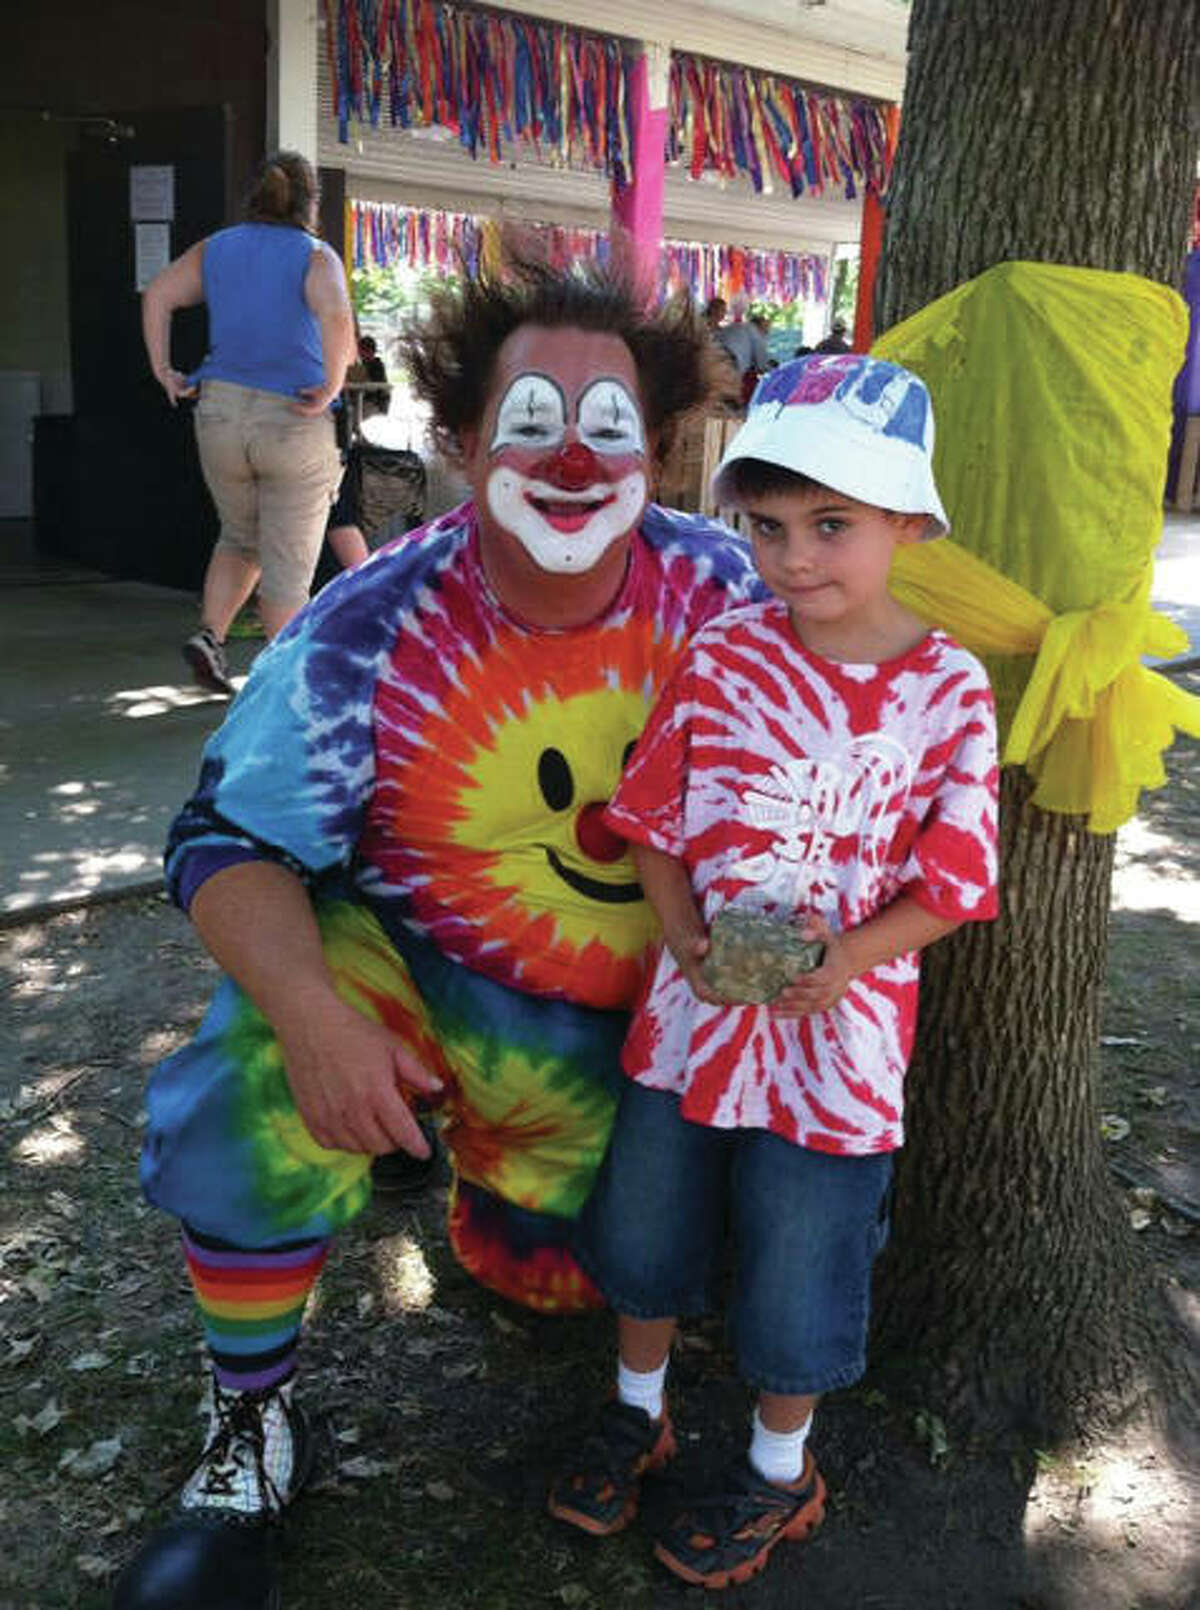 Dooley the Clown poses with a child at the Midwest Salute to the Arts festival, where he will be this year all day, both Saturday, Aug. 24 & Sunday, Aug. 25.